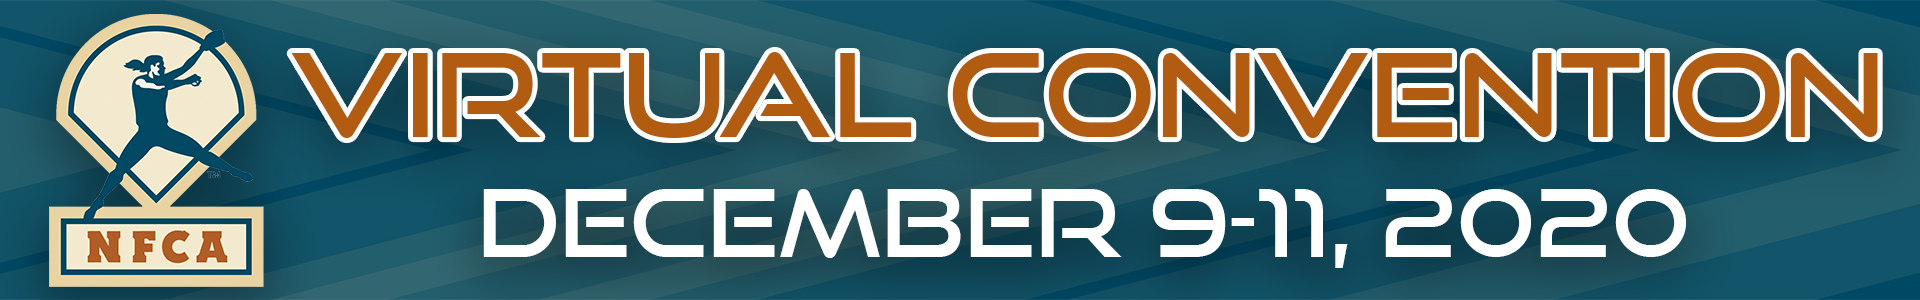 NFCA Convention Virtual 2020 small header